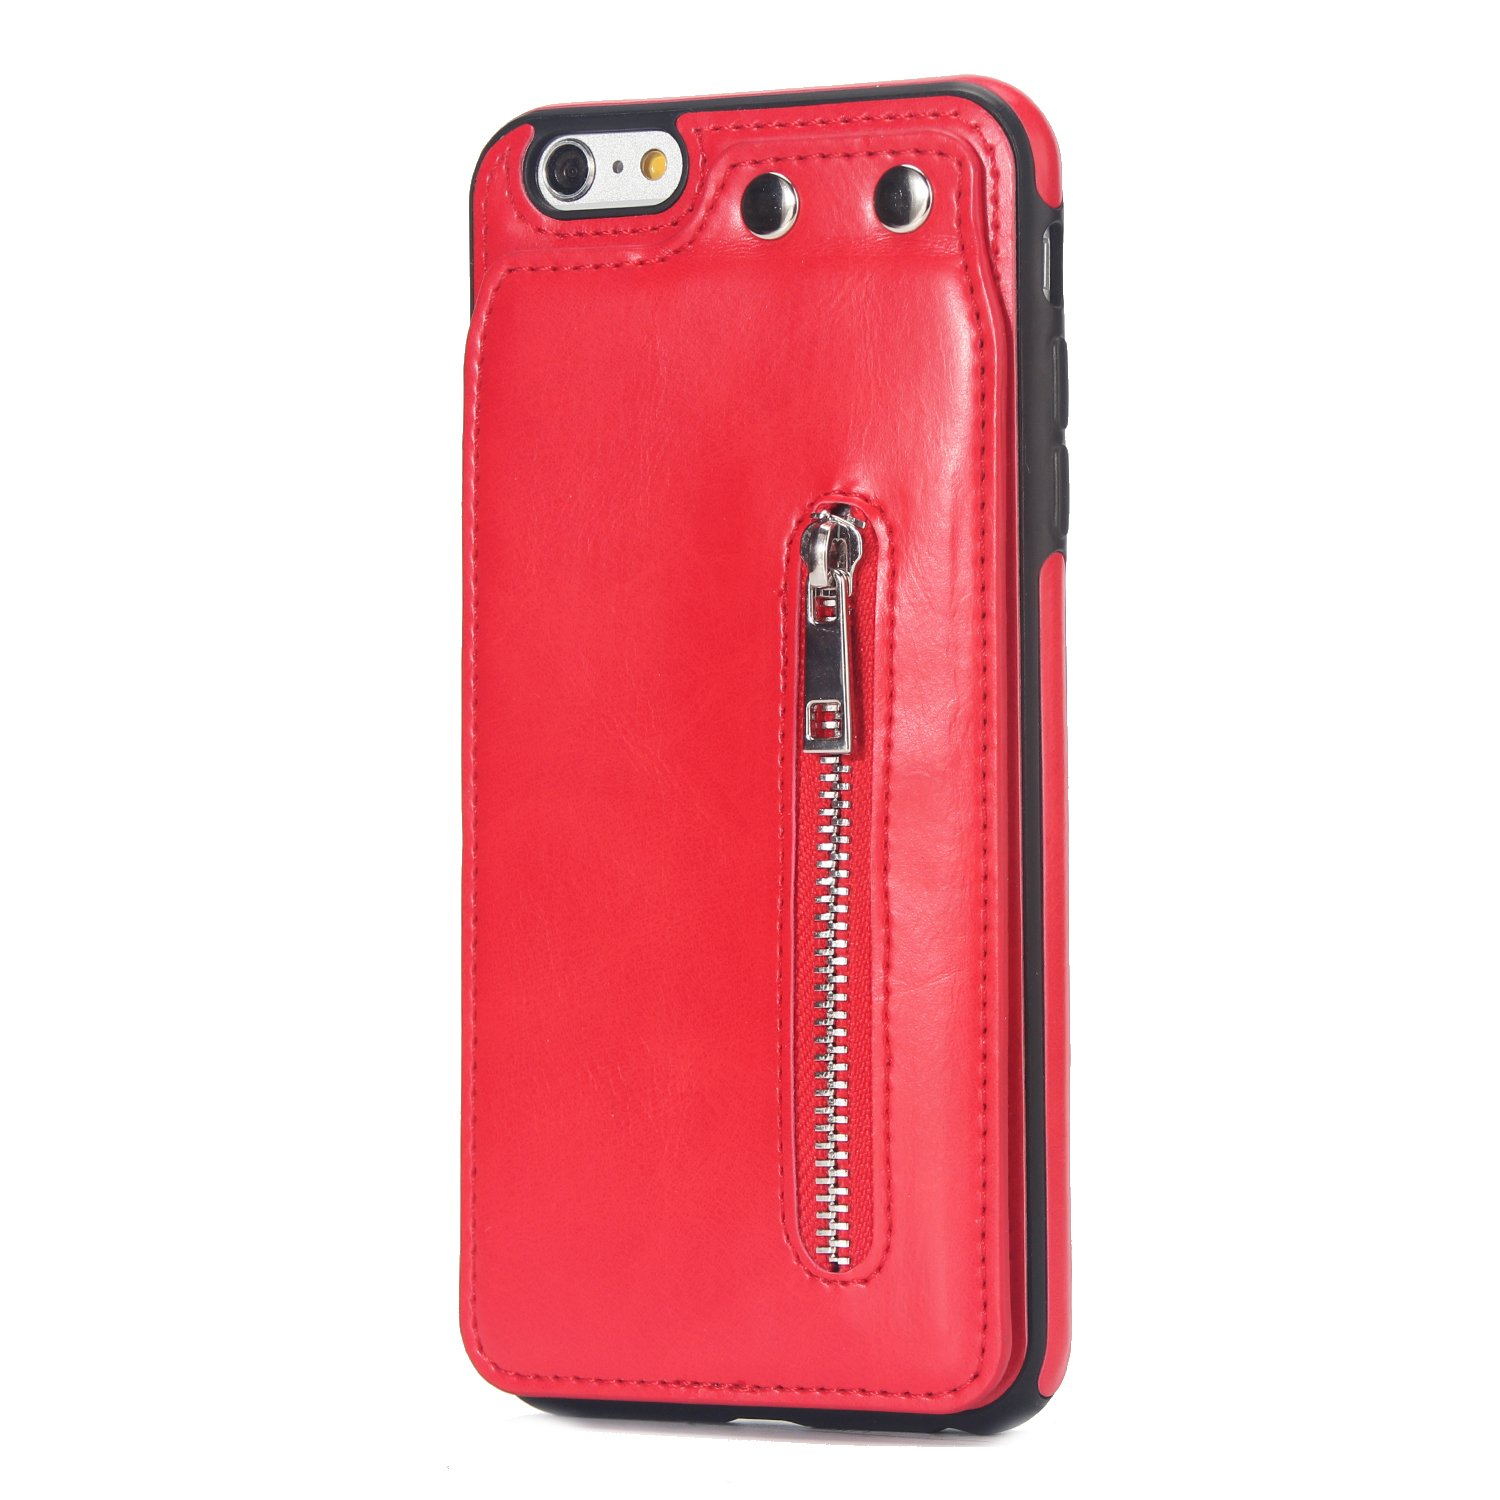 Case for iPhone 6/iPhone 6S Flip Case Premium PU Leather Wallet Cover with Card Holder Money Pocket Durable Shockproof Protective Cover for iPhone 6/6S,Red by ikasus